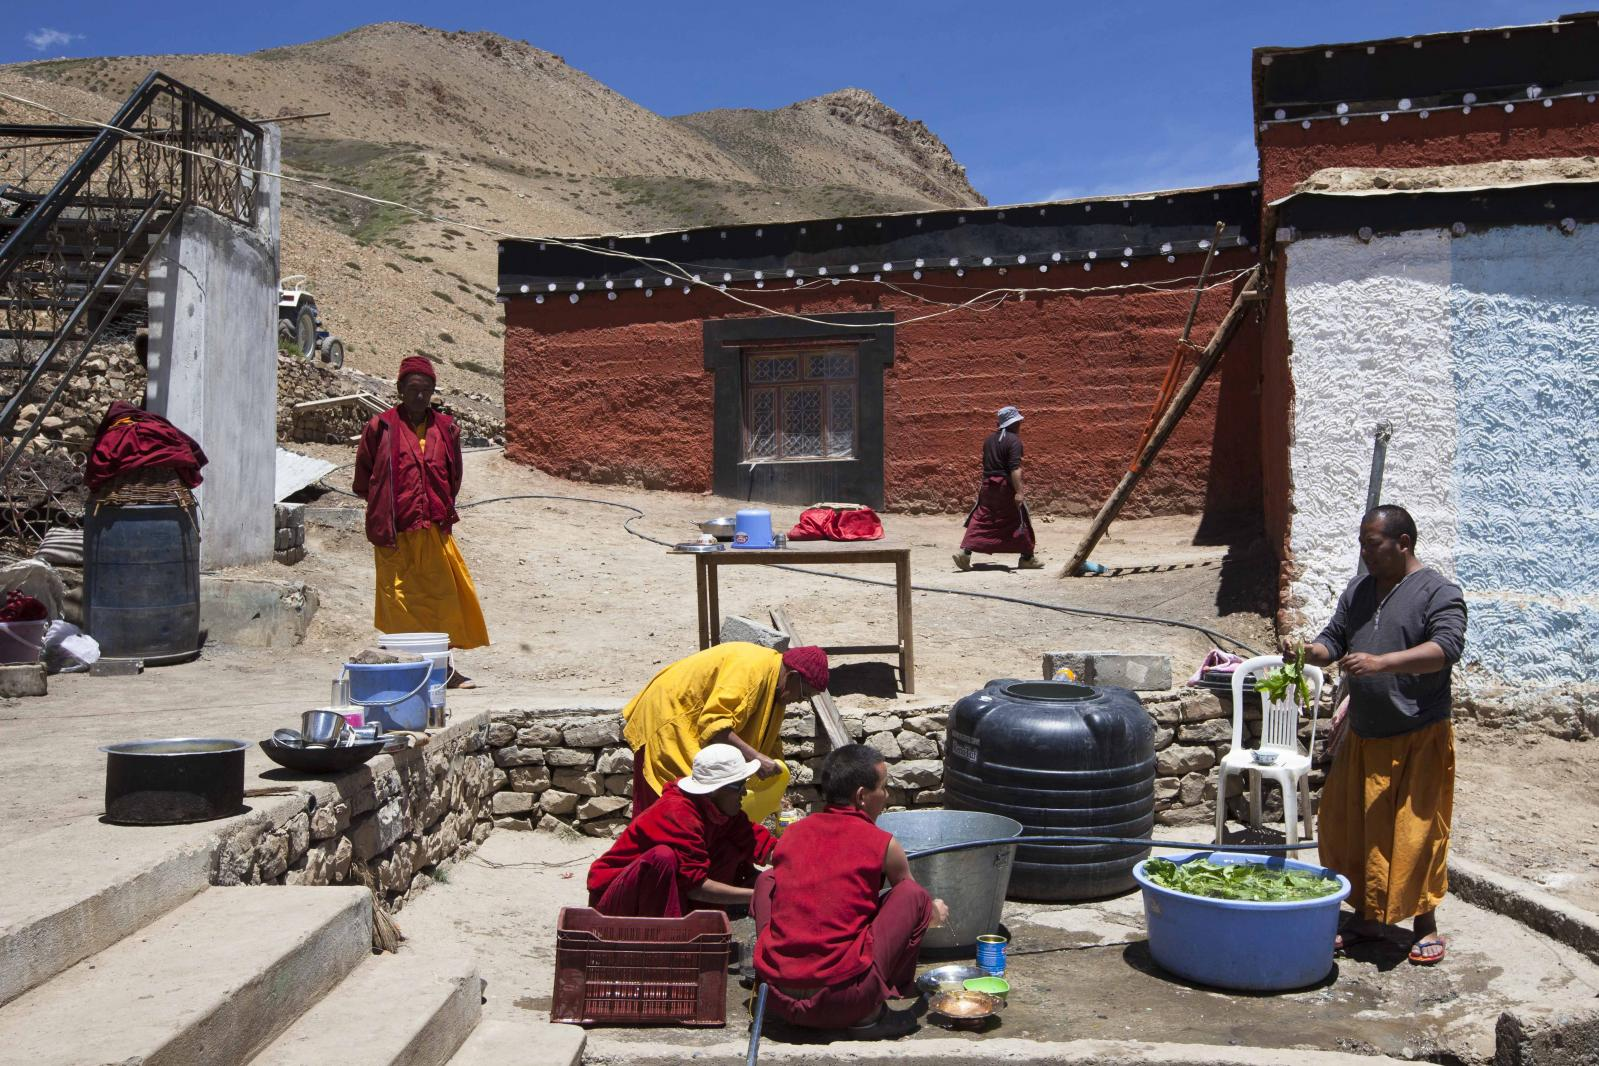 Buddhist monks carry out daily chores at Tnagyud Gompa monastery in Komik village, in Spiti Valley of the Indian northern state of Himachal Pradesh.